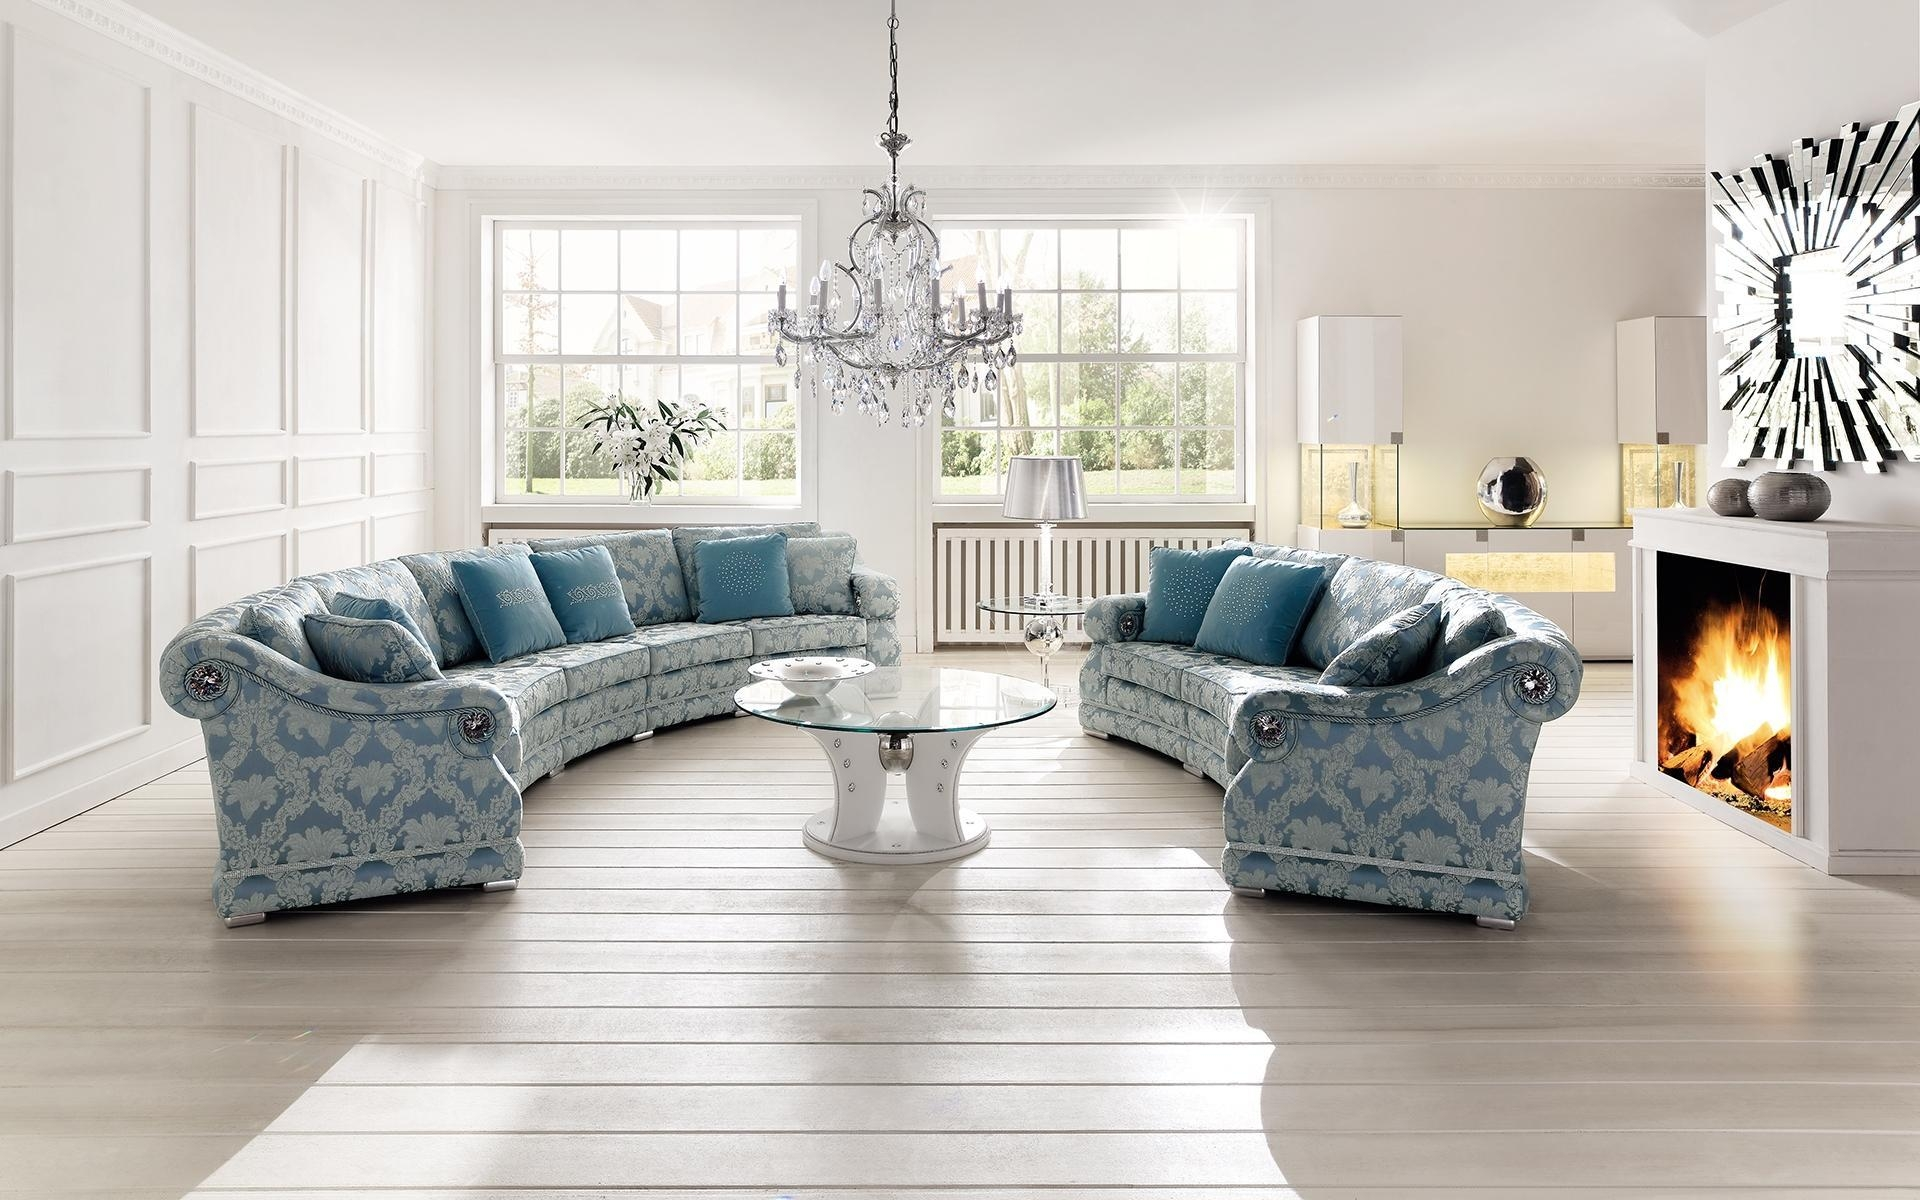 Best Modest Floral Sofas And Chairs #1658 Throughout Floral Sofas And Chairs (Image 3 of 20)